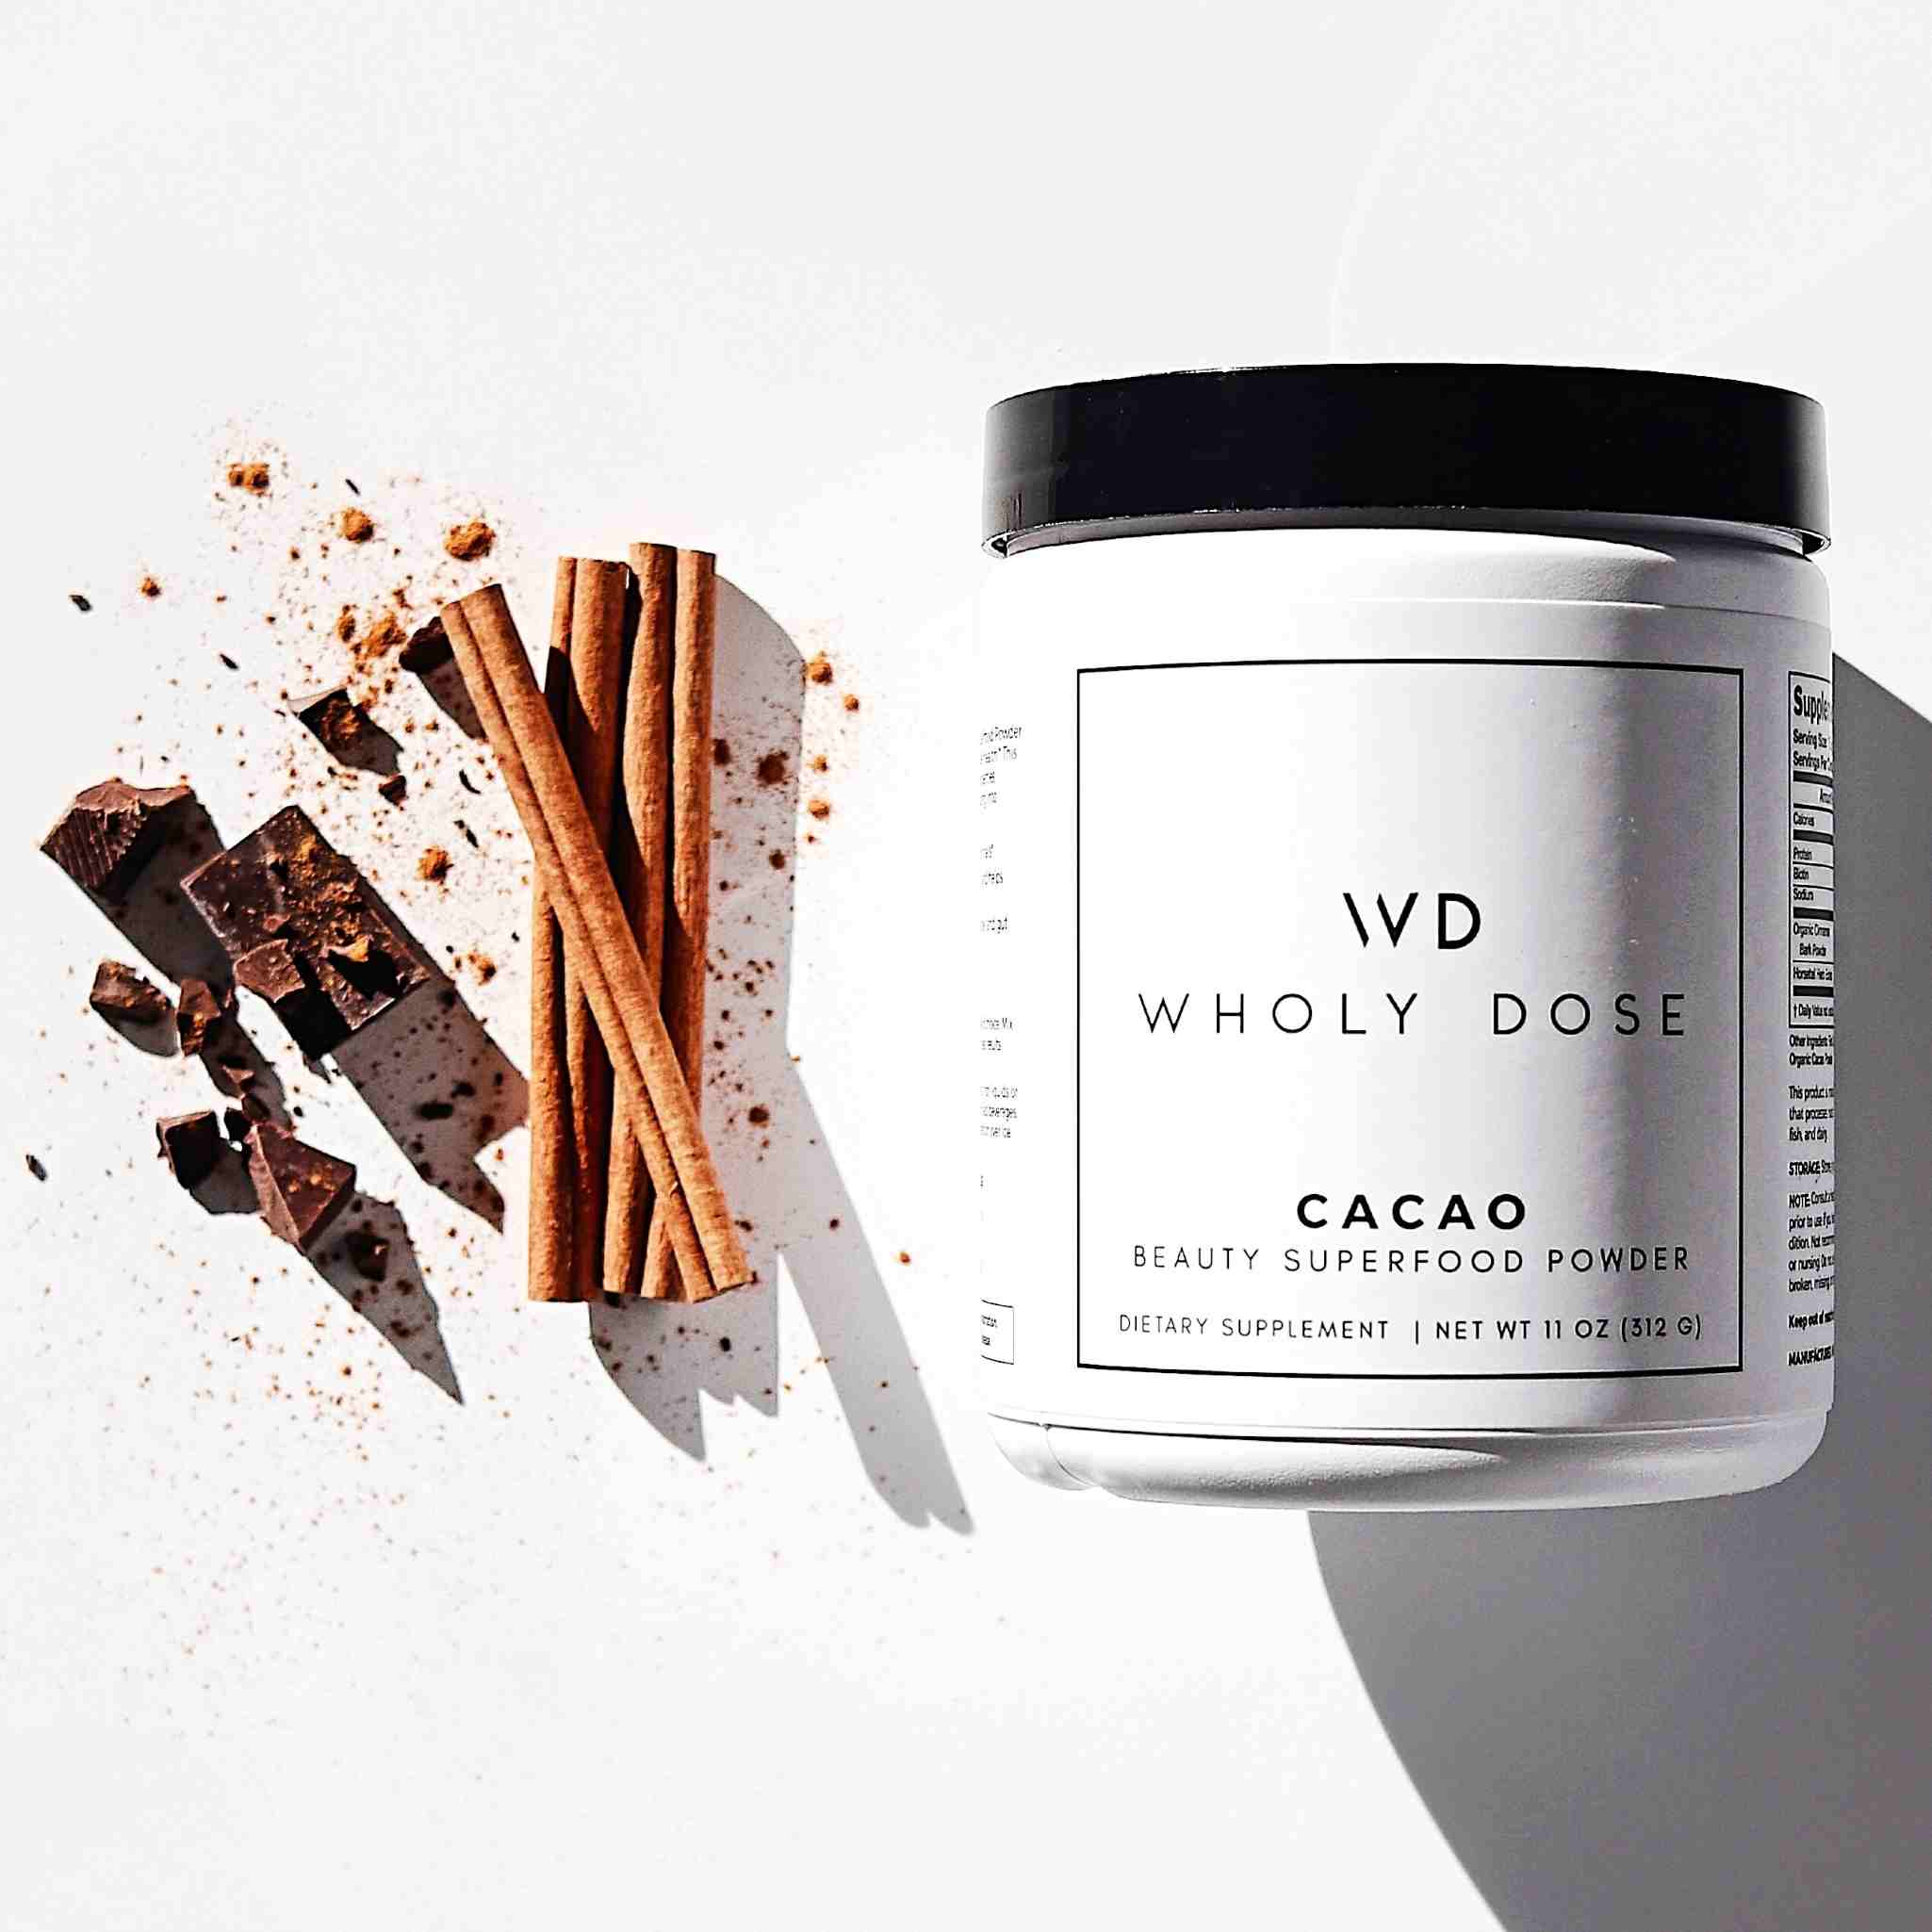 CACAO Beauty Superfood Powder